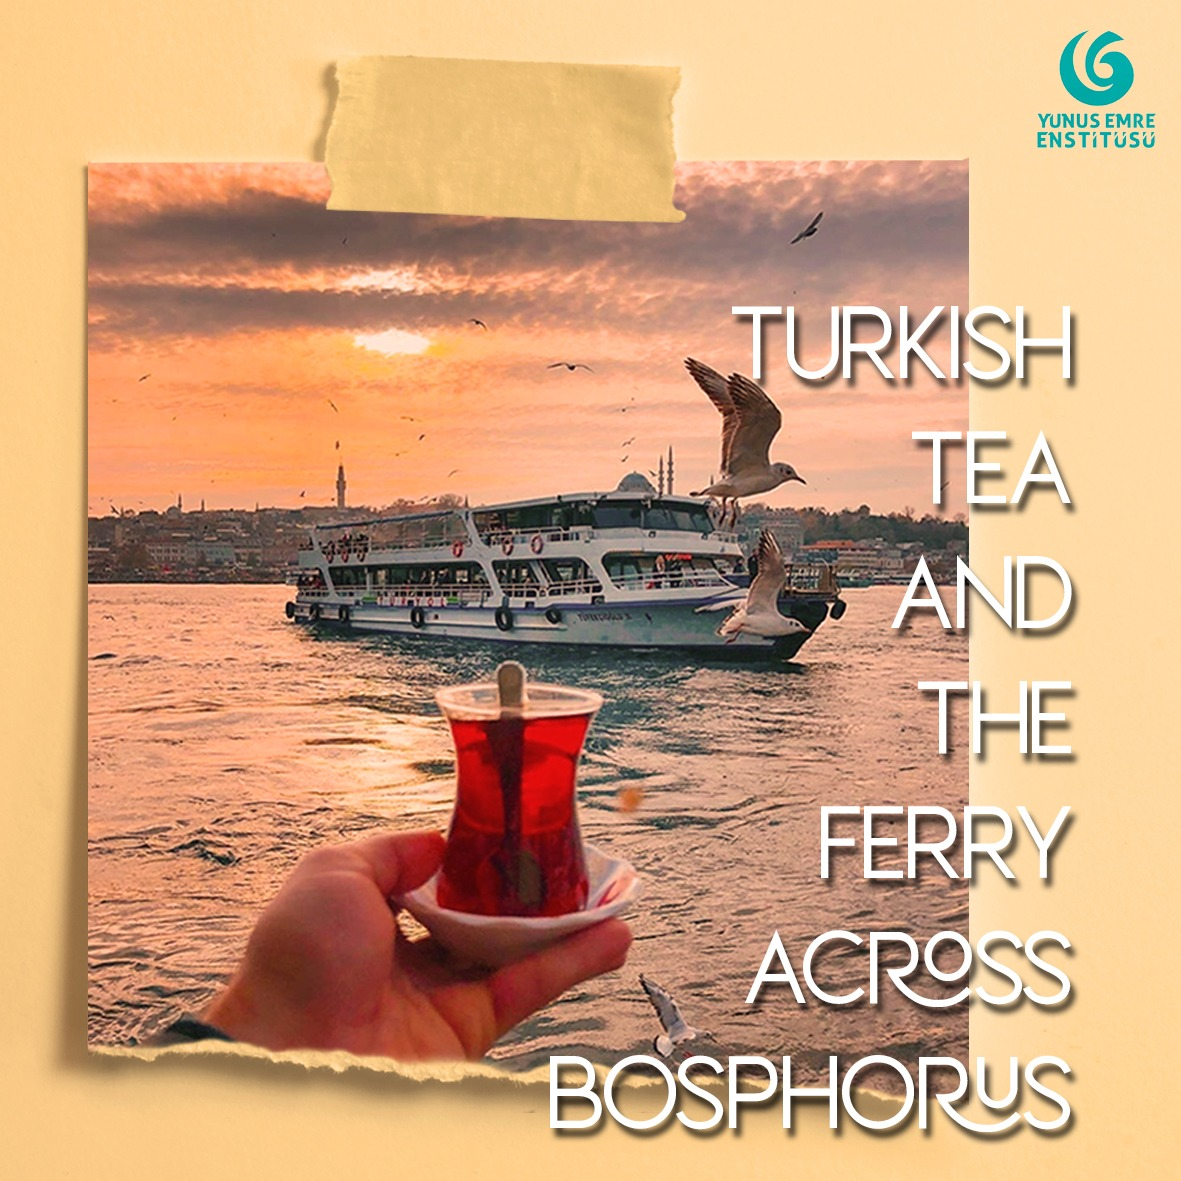 Turkey's tea culture is endless! It is one of the major sources of caffeine throughout the country. Every spot with a view has a tea-house or a tea-garden.    #Turkey #Pakistan #Tea #Turkishtea #Redtea #Blacktea #Tourism #Boshphorous #Istanbul #Ferry #Pakturk #Turkish #Beverages pic.twitter.com/RrWn5nJna0